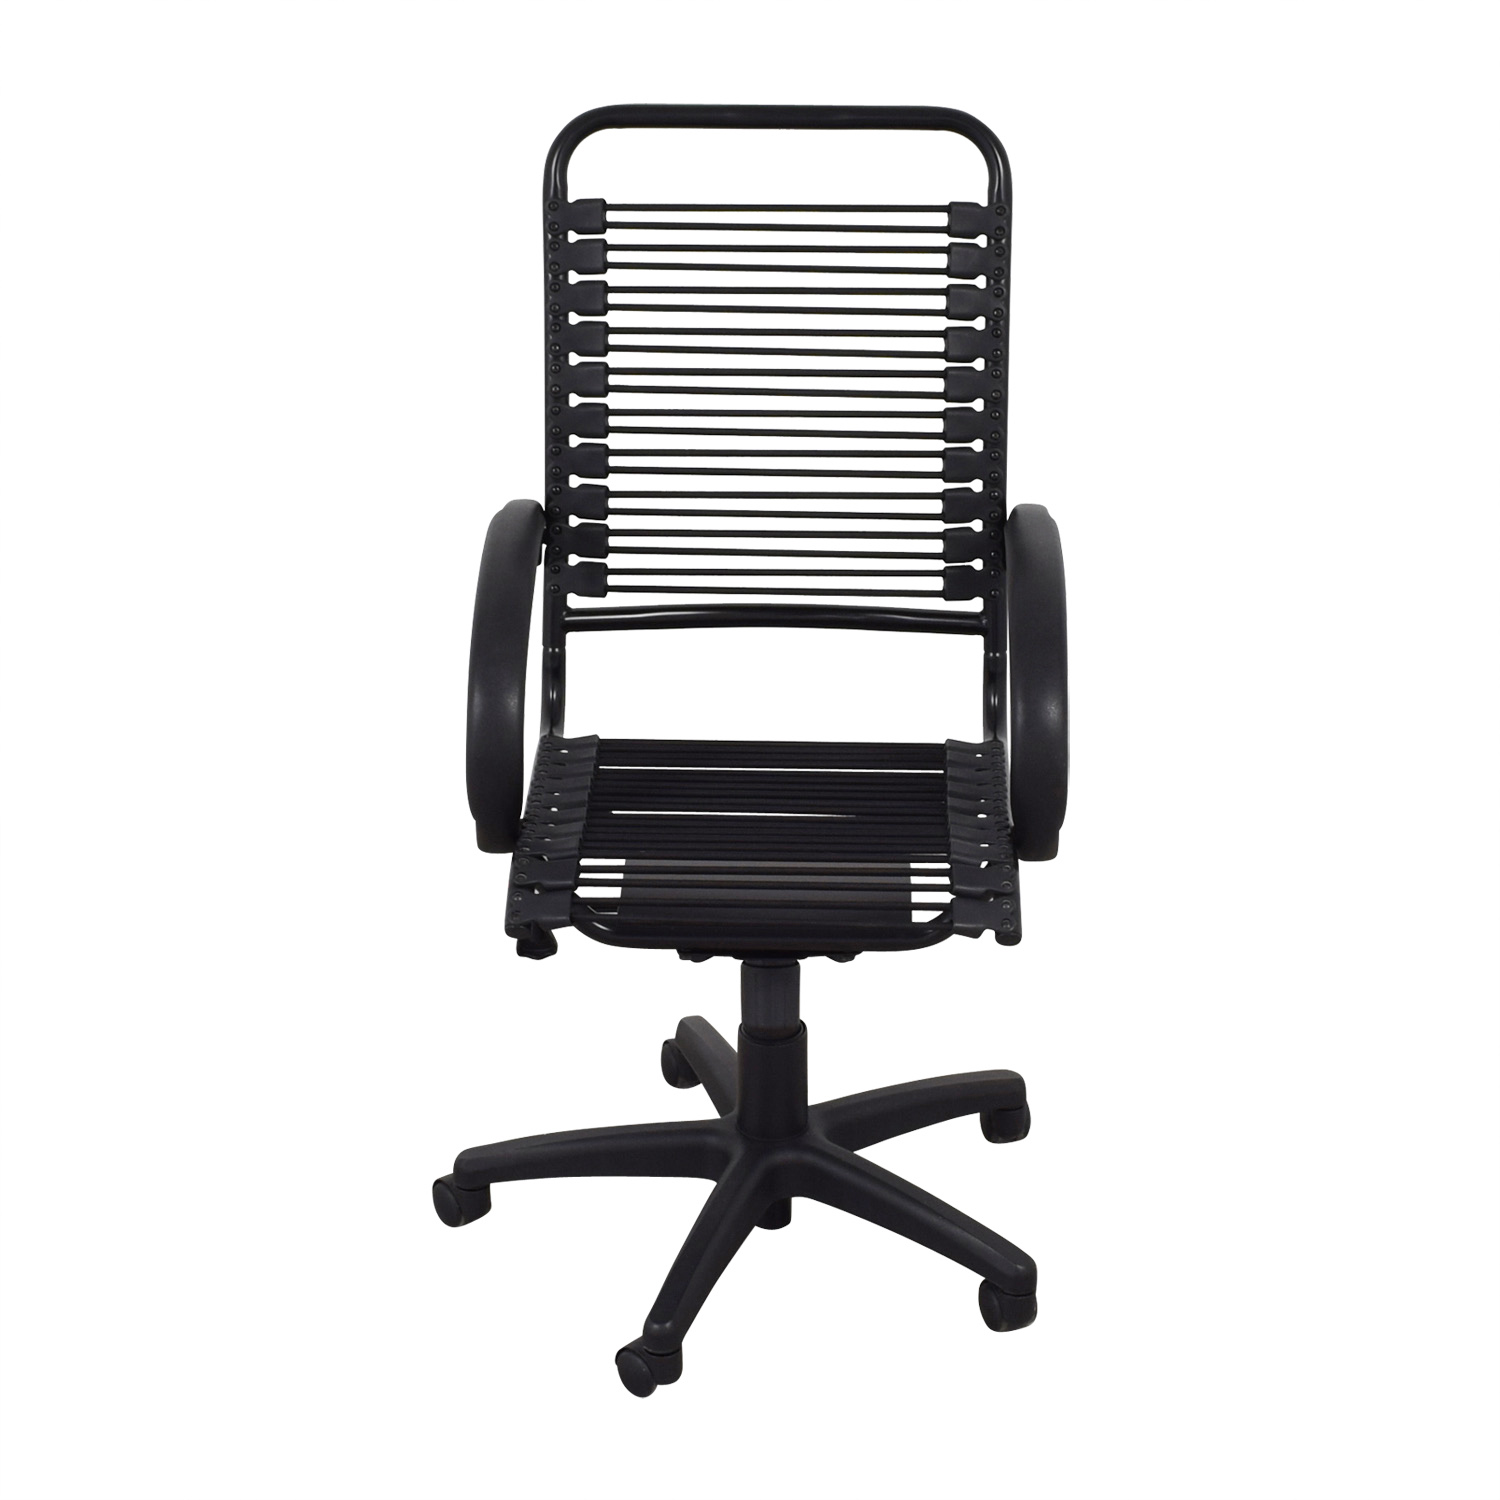 CB2 CB2 Black Studio Office Chair Home Office Chairs